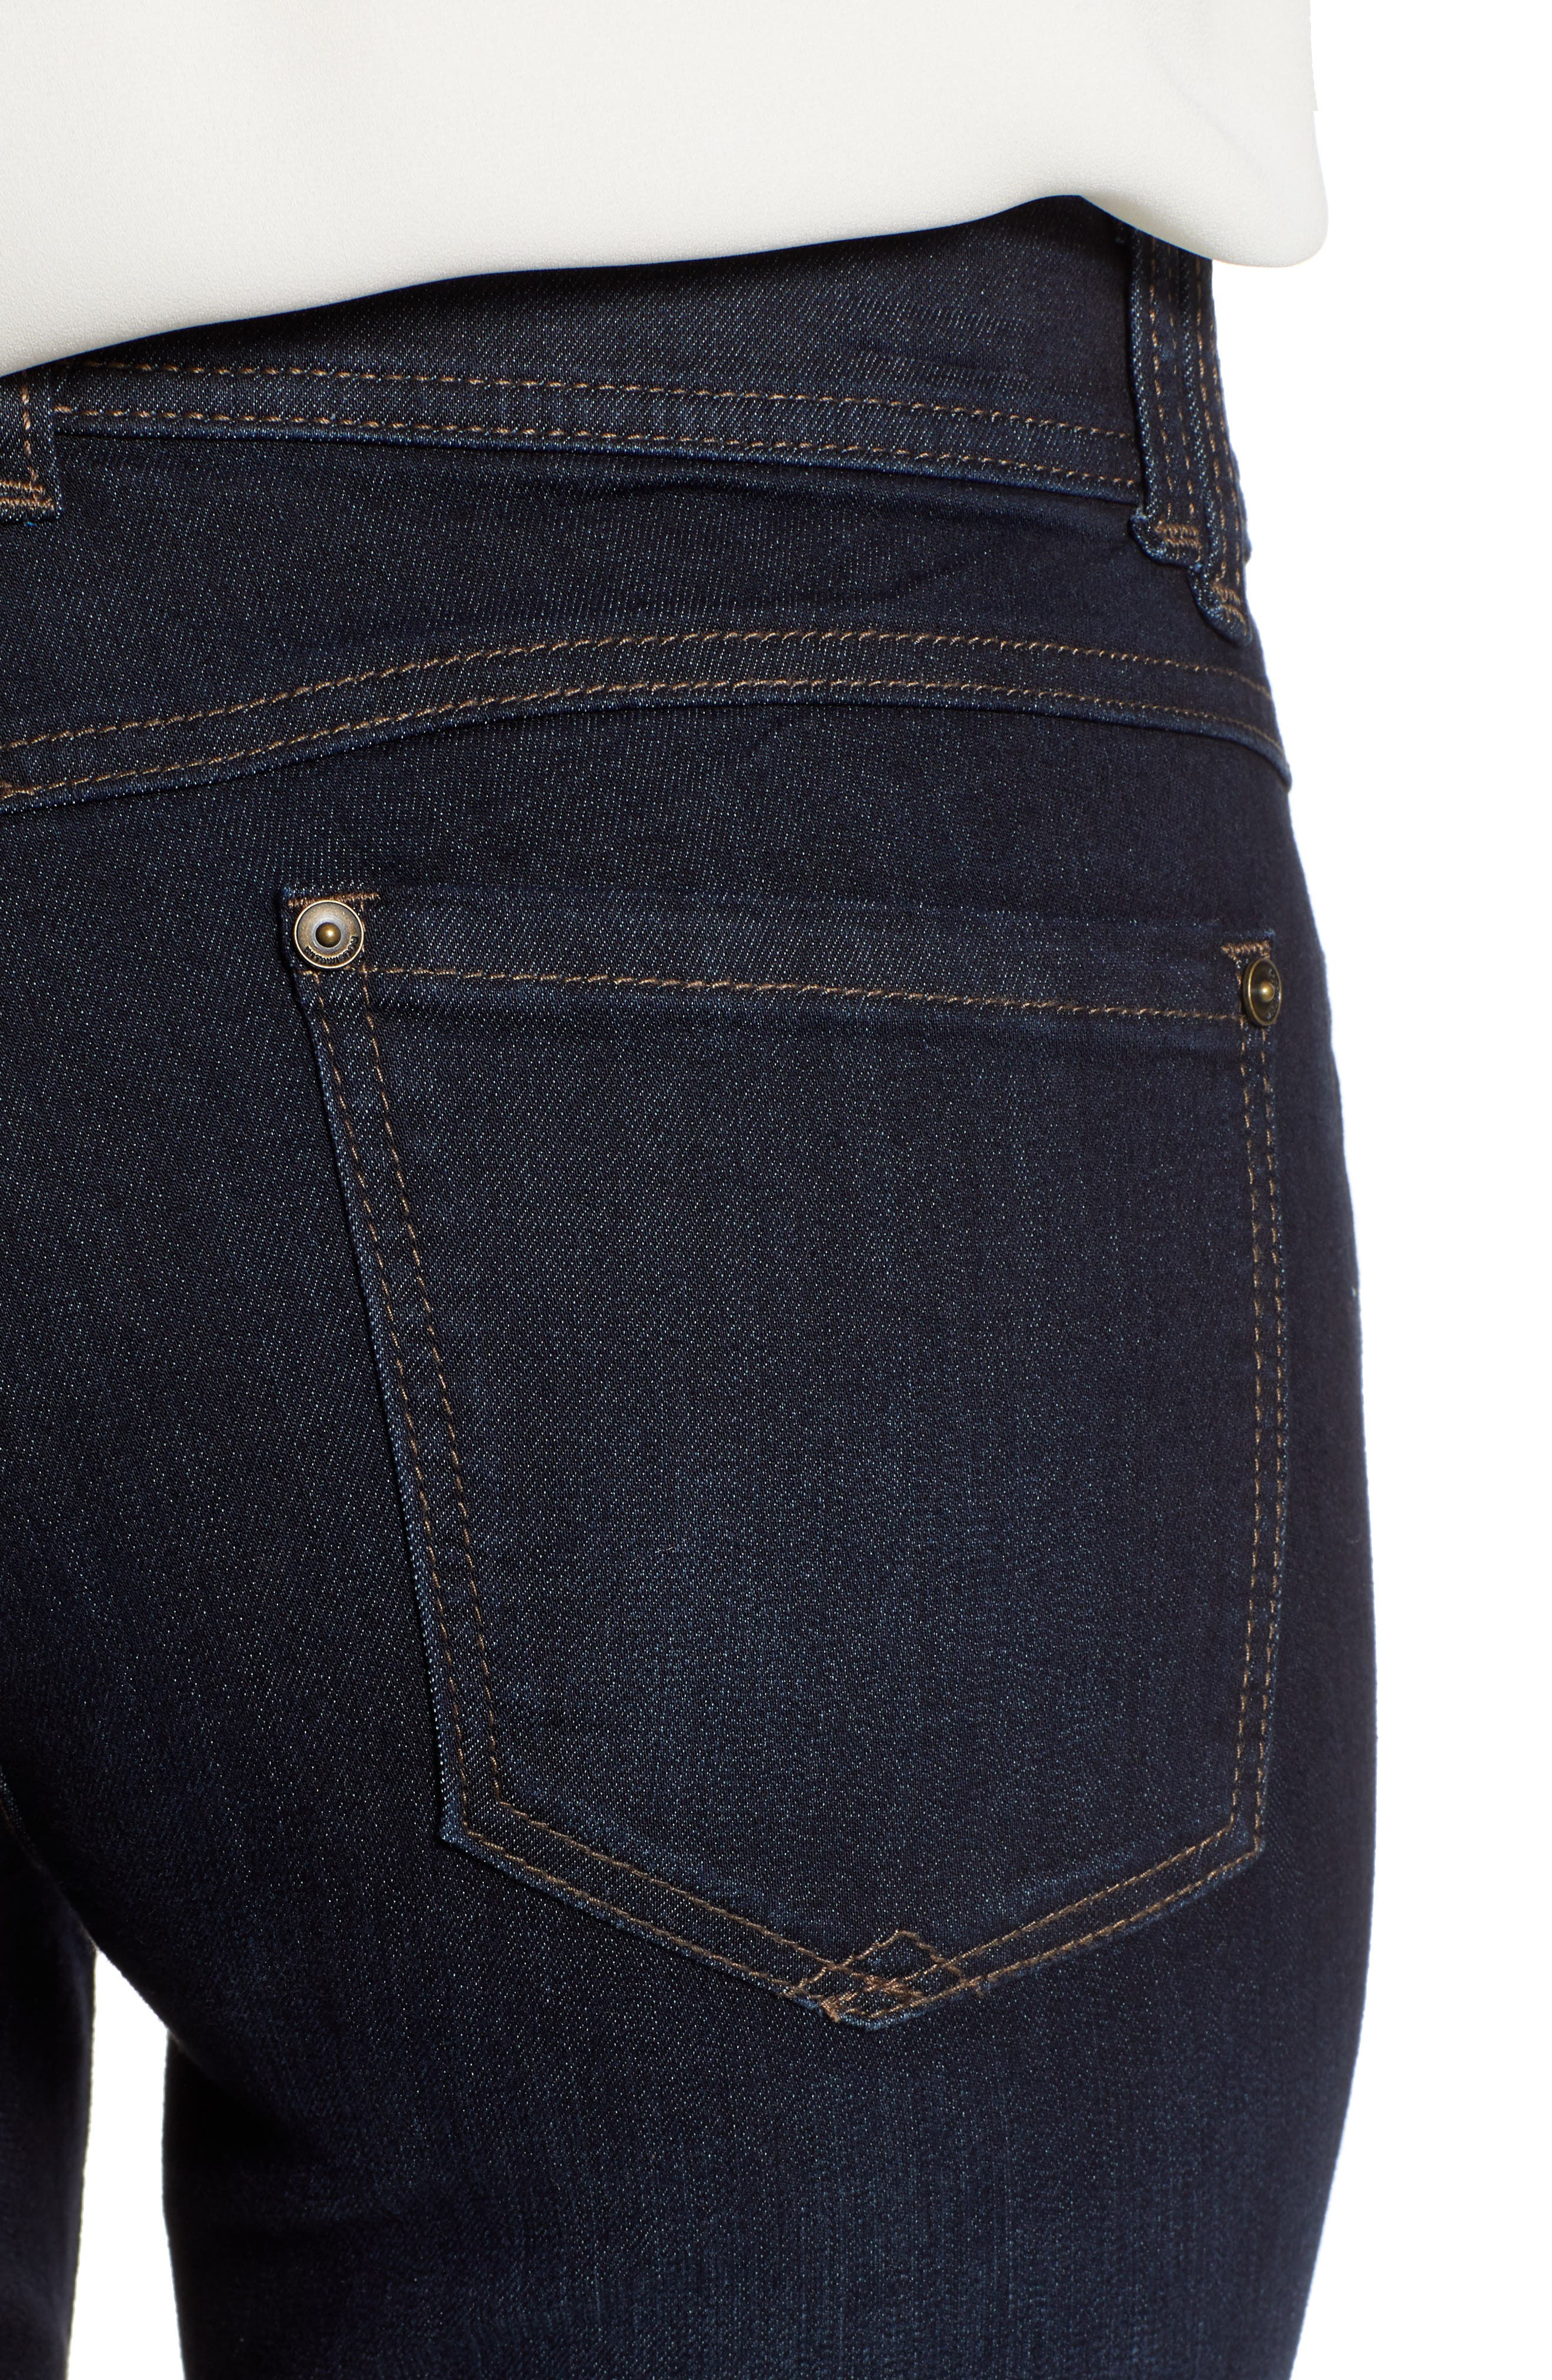 Ab-solution Itty Bitty Bootcut Jeans,                             Alternate thumbnail 4, color,                             INDIGO